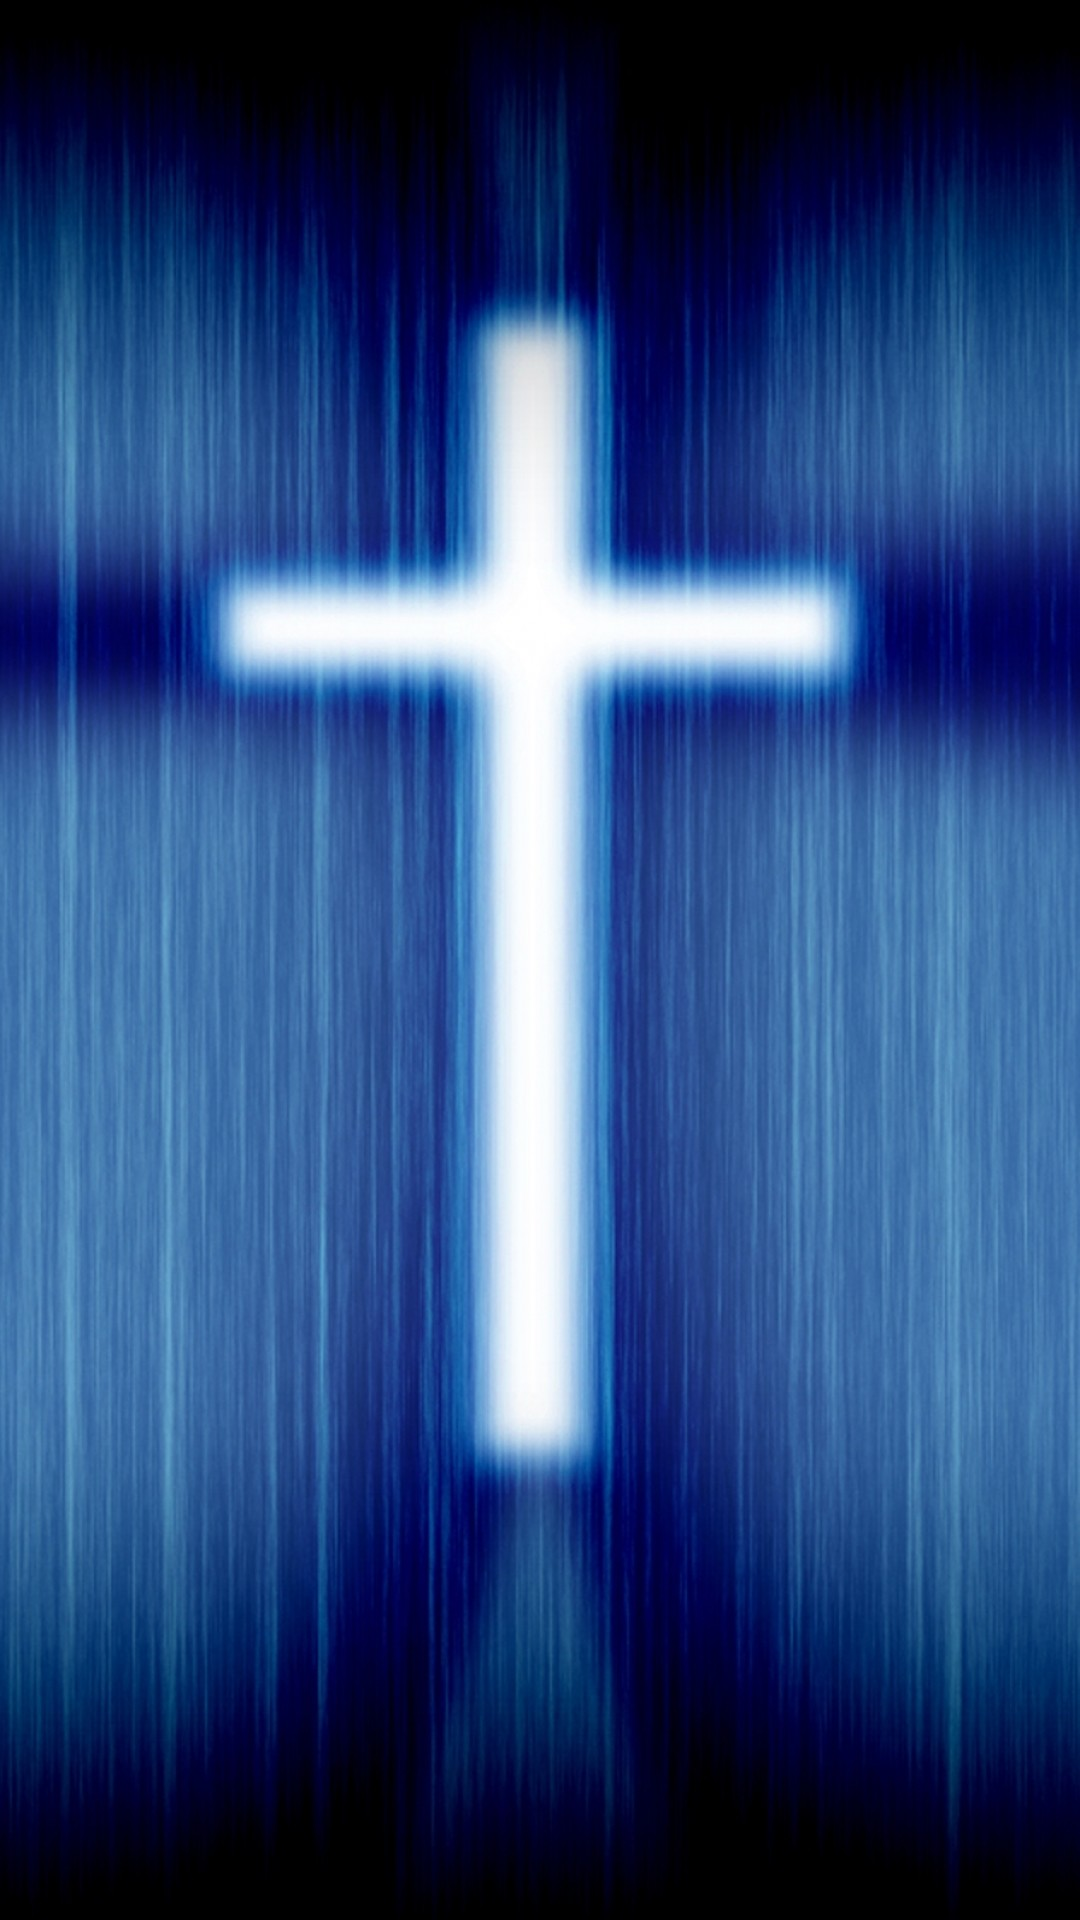 Christian Wallpaper Iphone 6 Christian Wallpaper For Iphone 64 Images